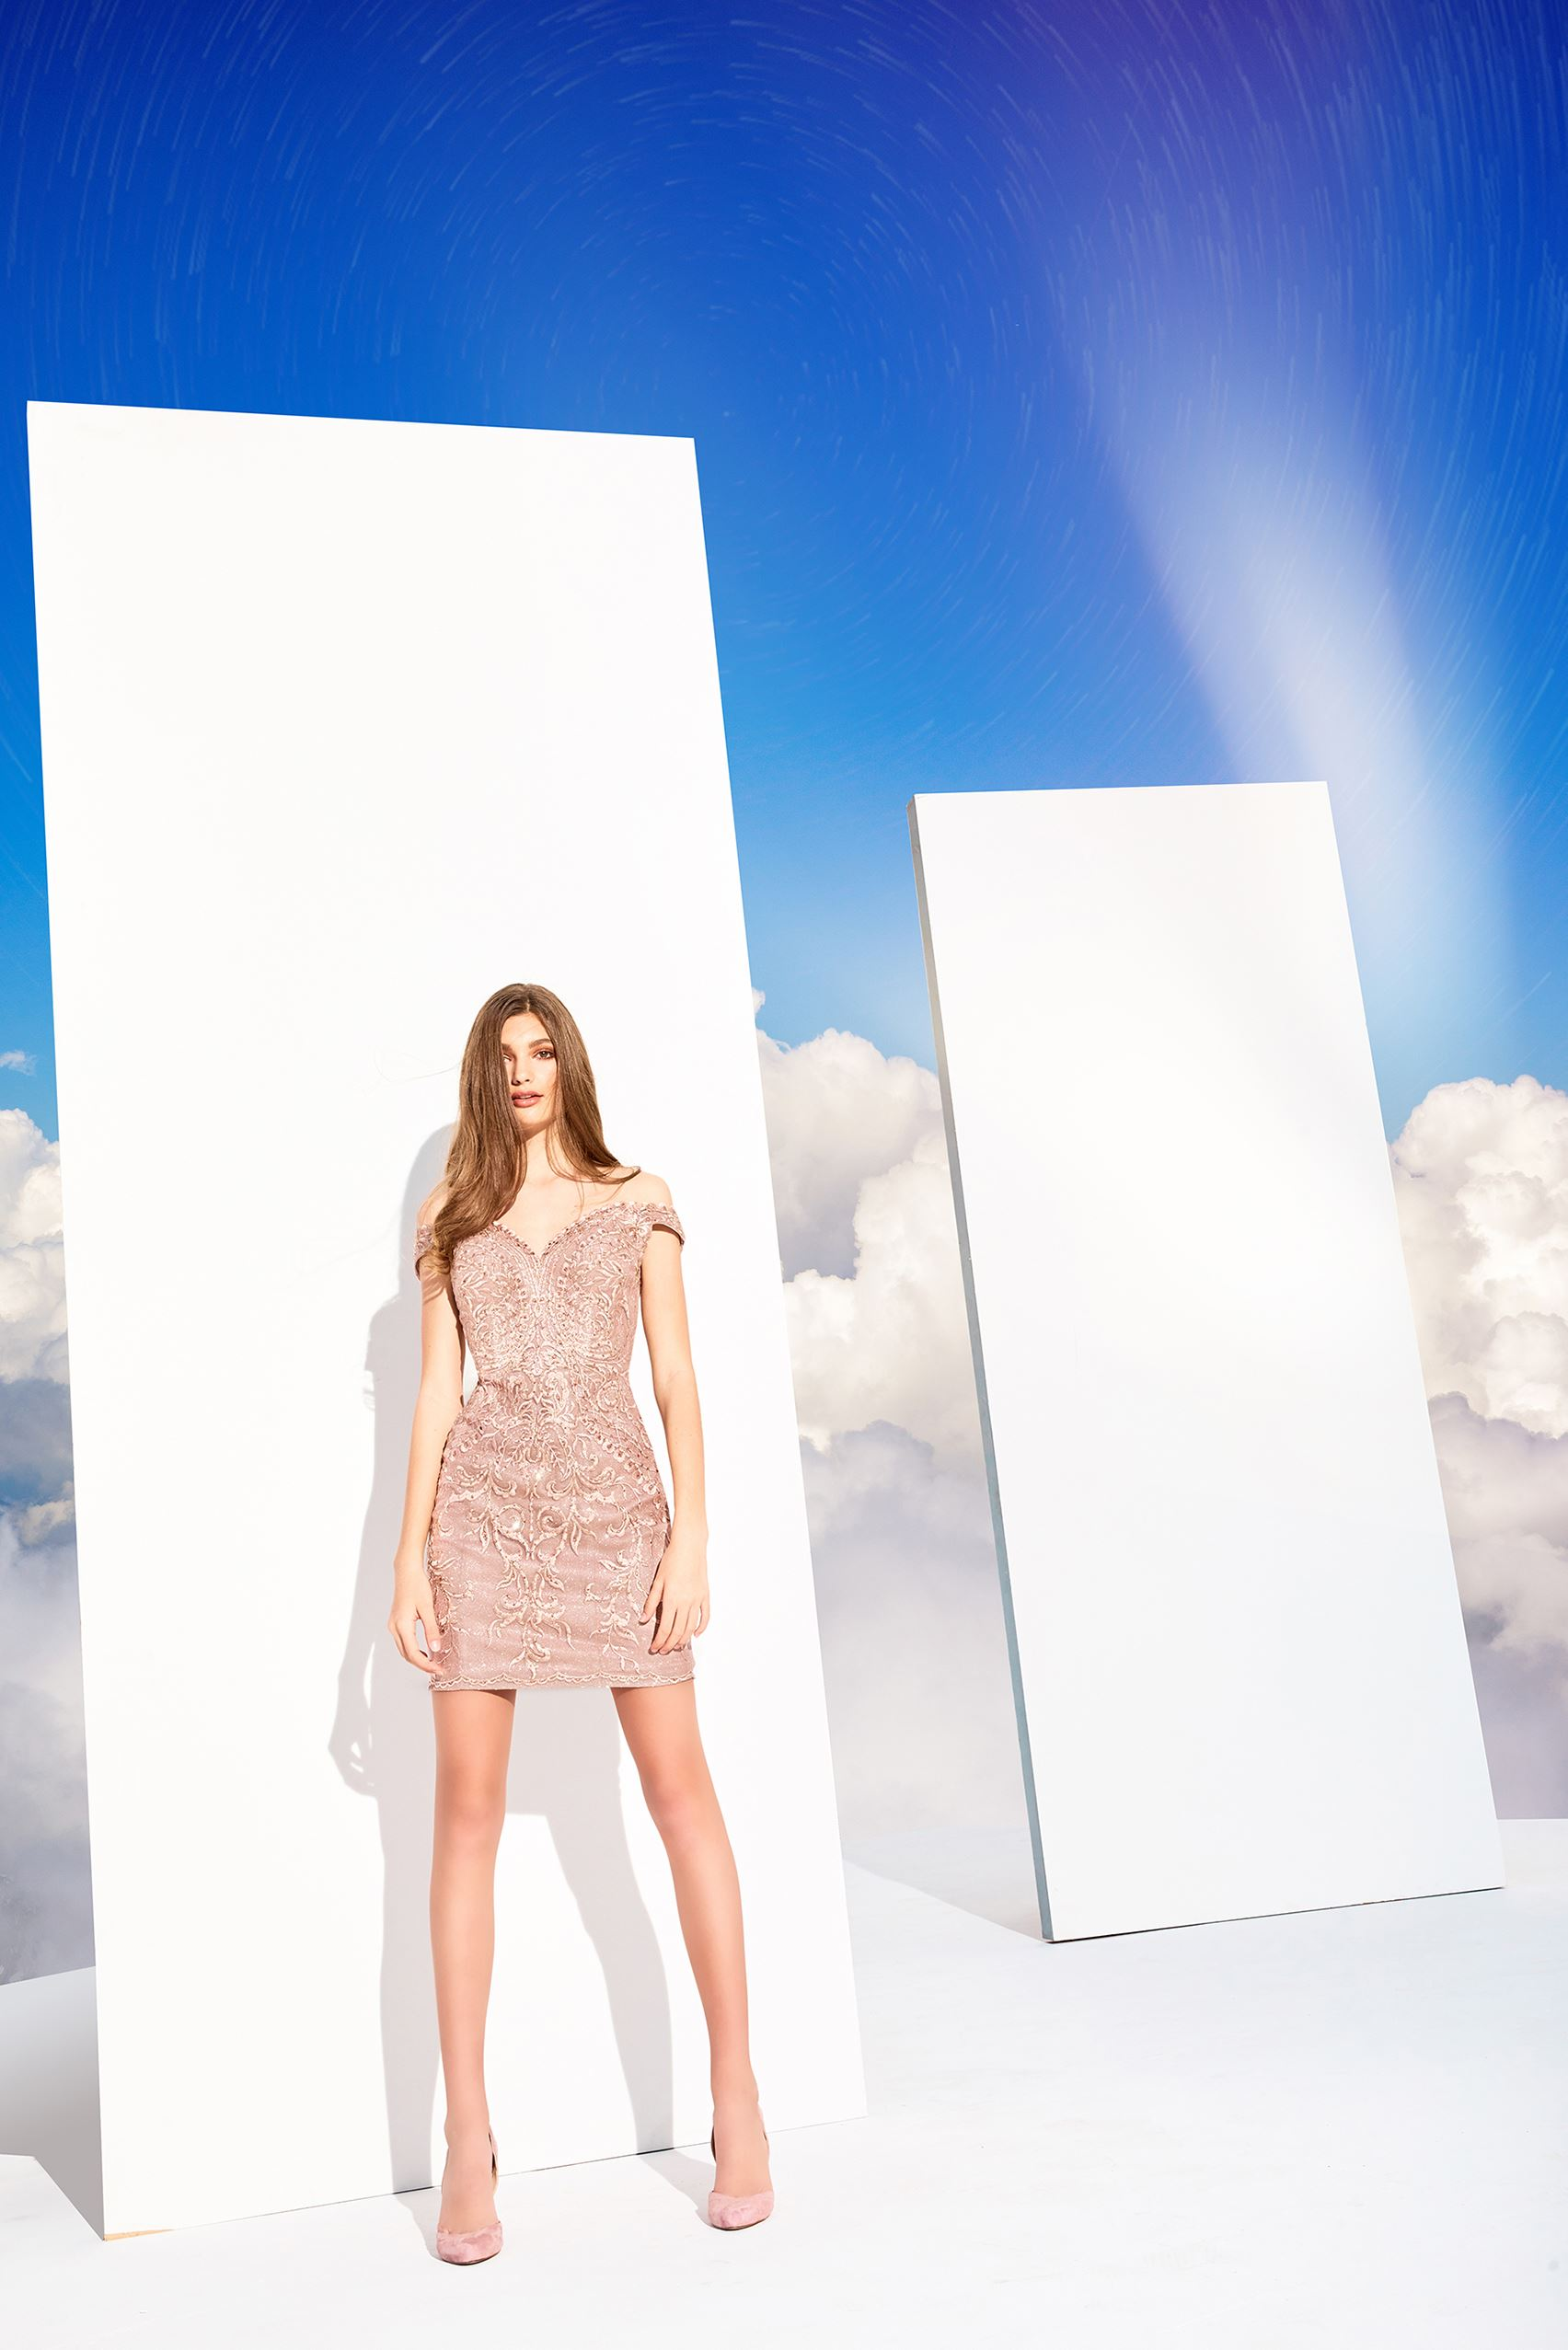 Brunette model in short champagne dress in front of clouds